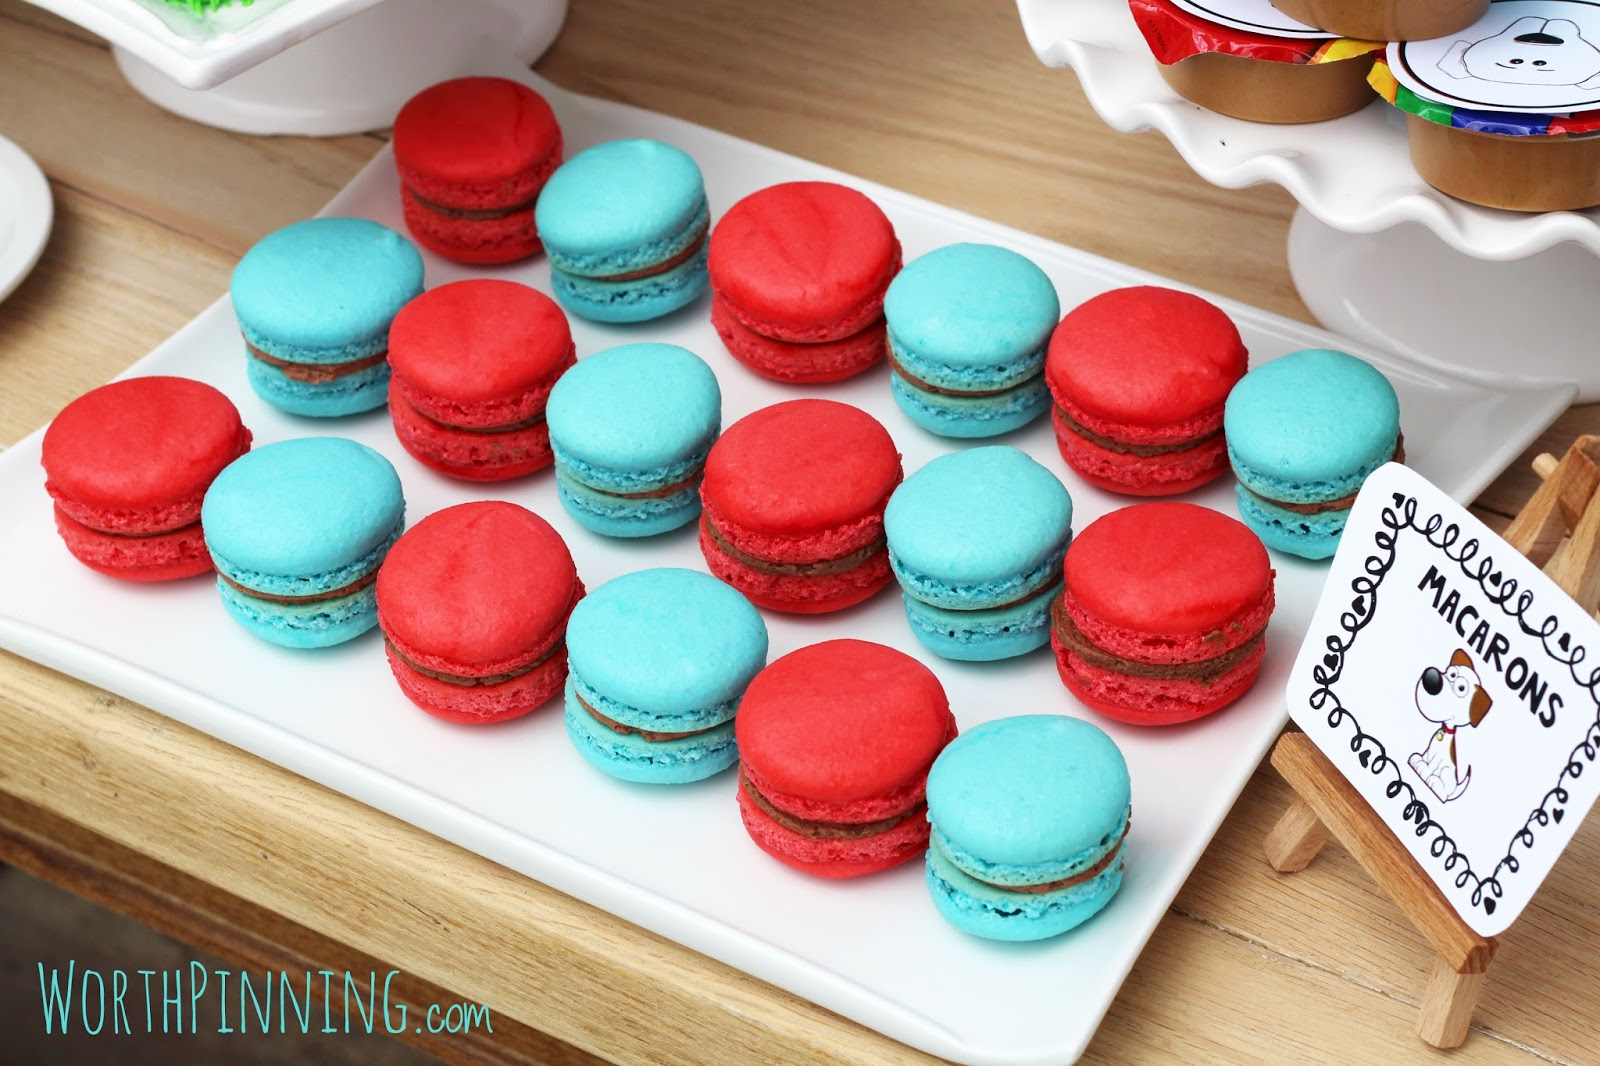 worth pinning red u0026 blue french macarons with nutella filling